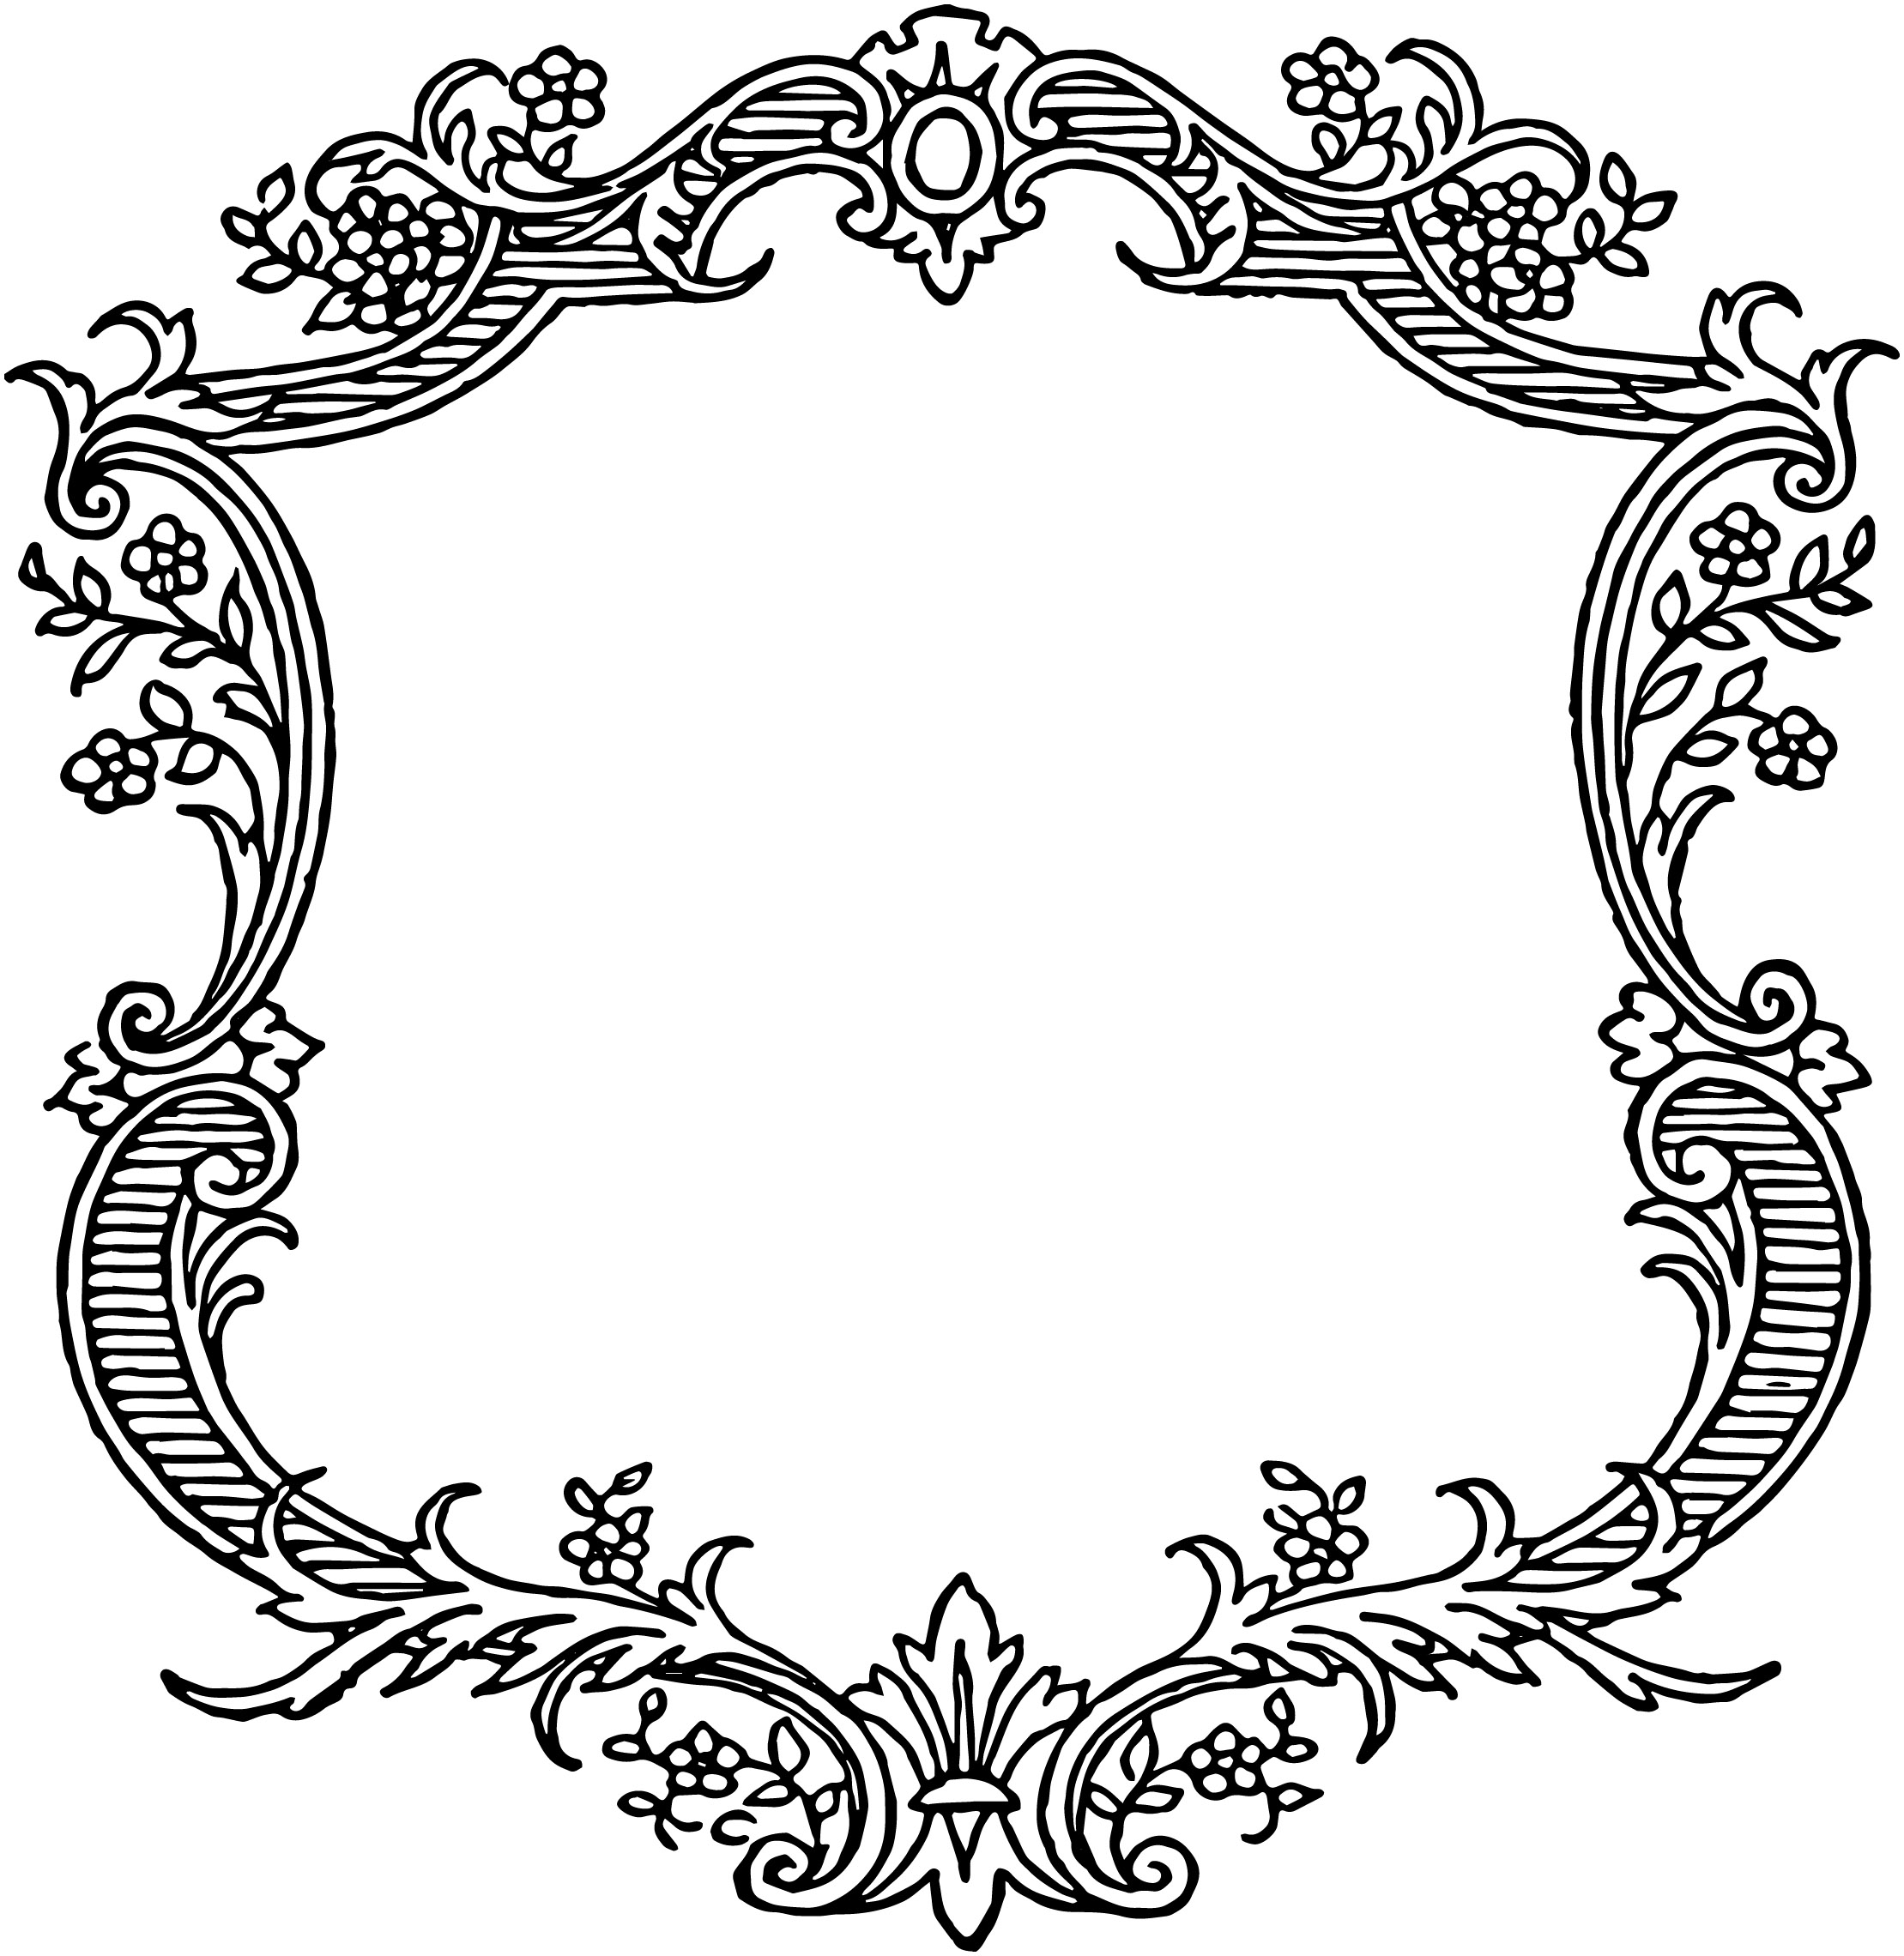 Clipart graphics free download clipart black and white download Vector Border | Free Download Clip Art | Free Clip Art | on ... clipart black and white download